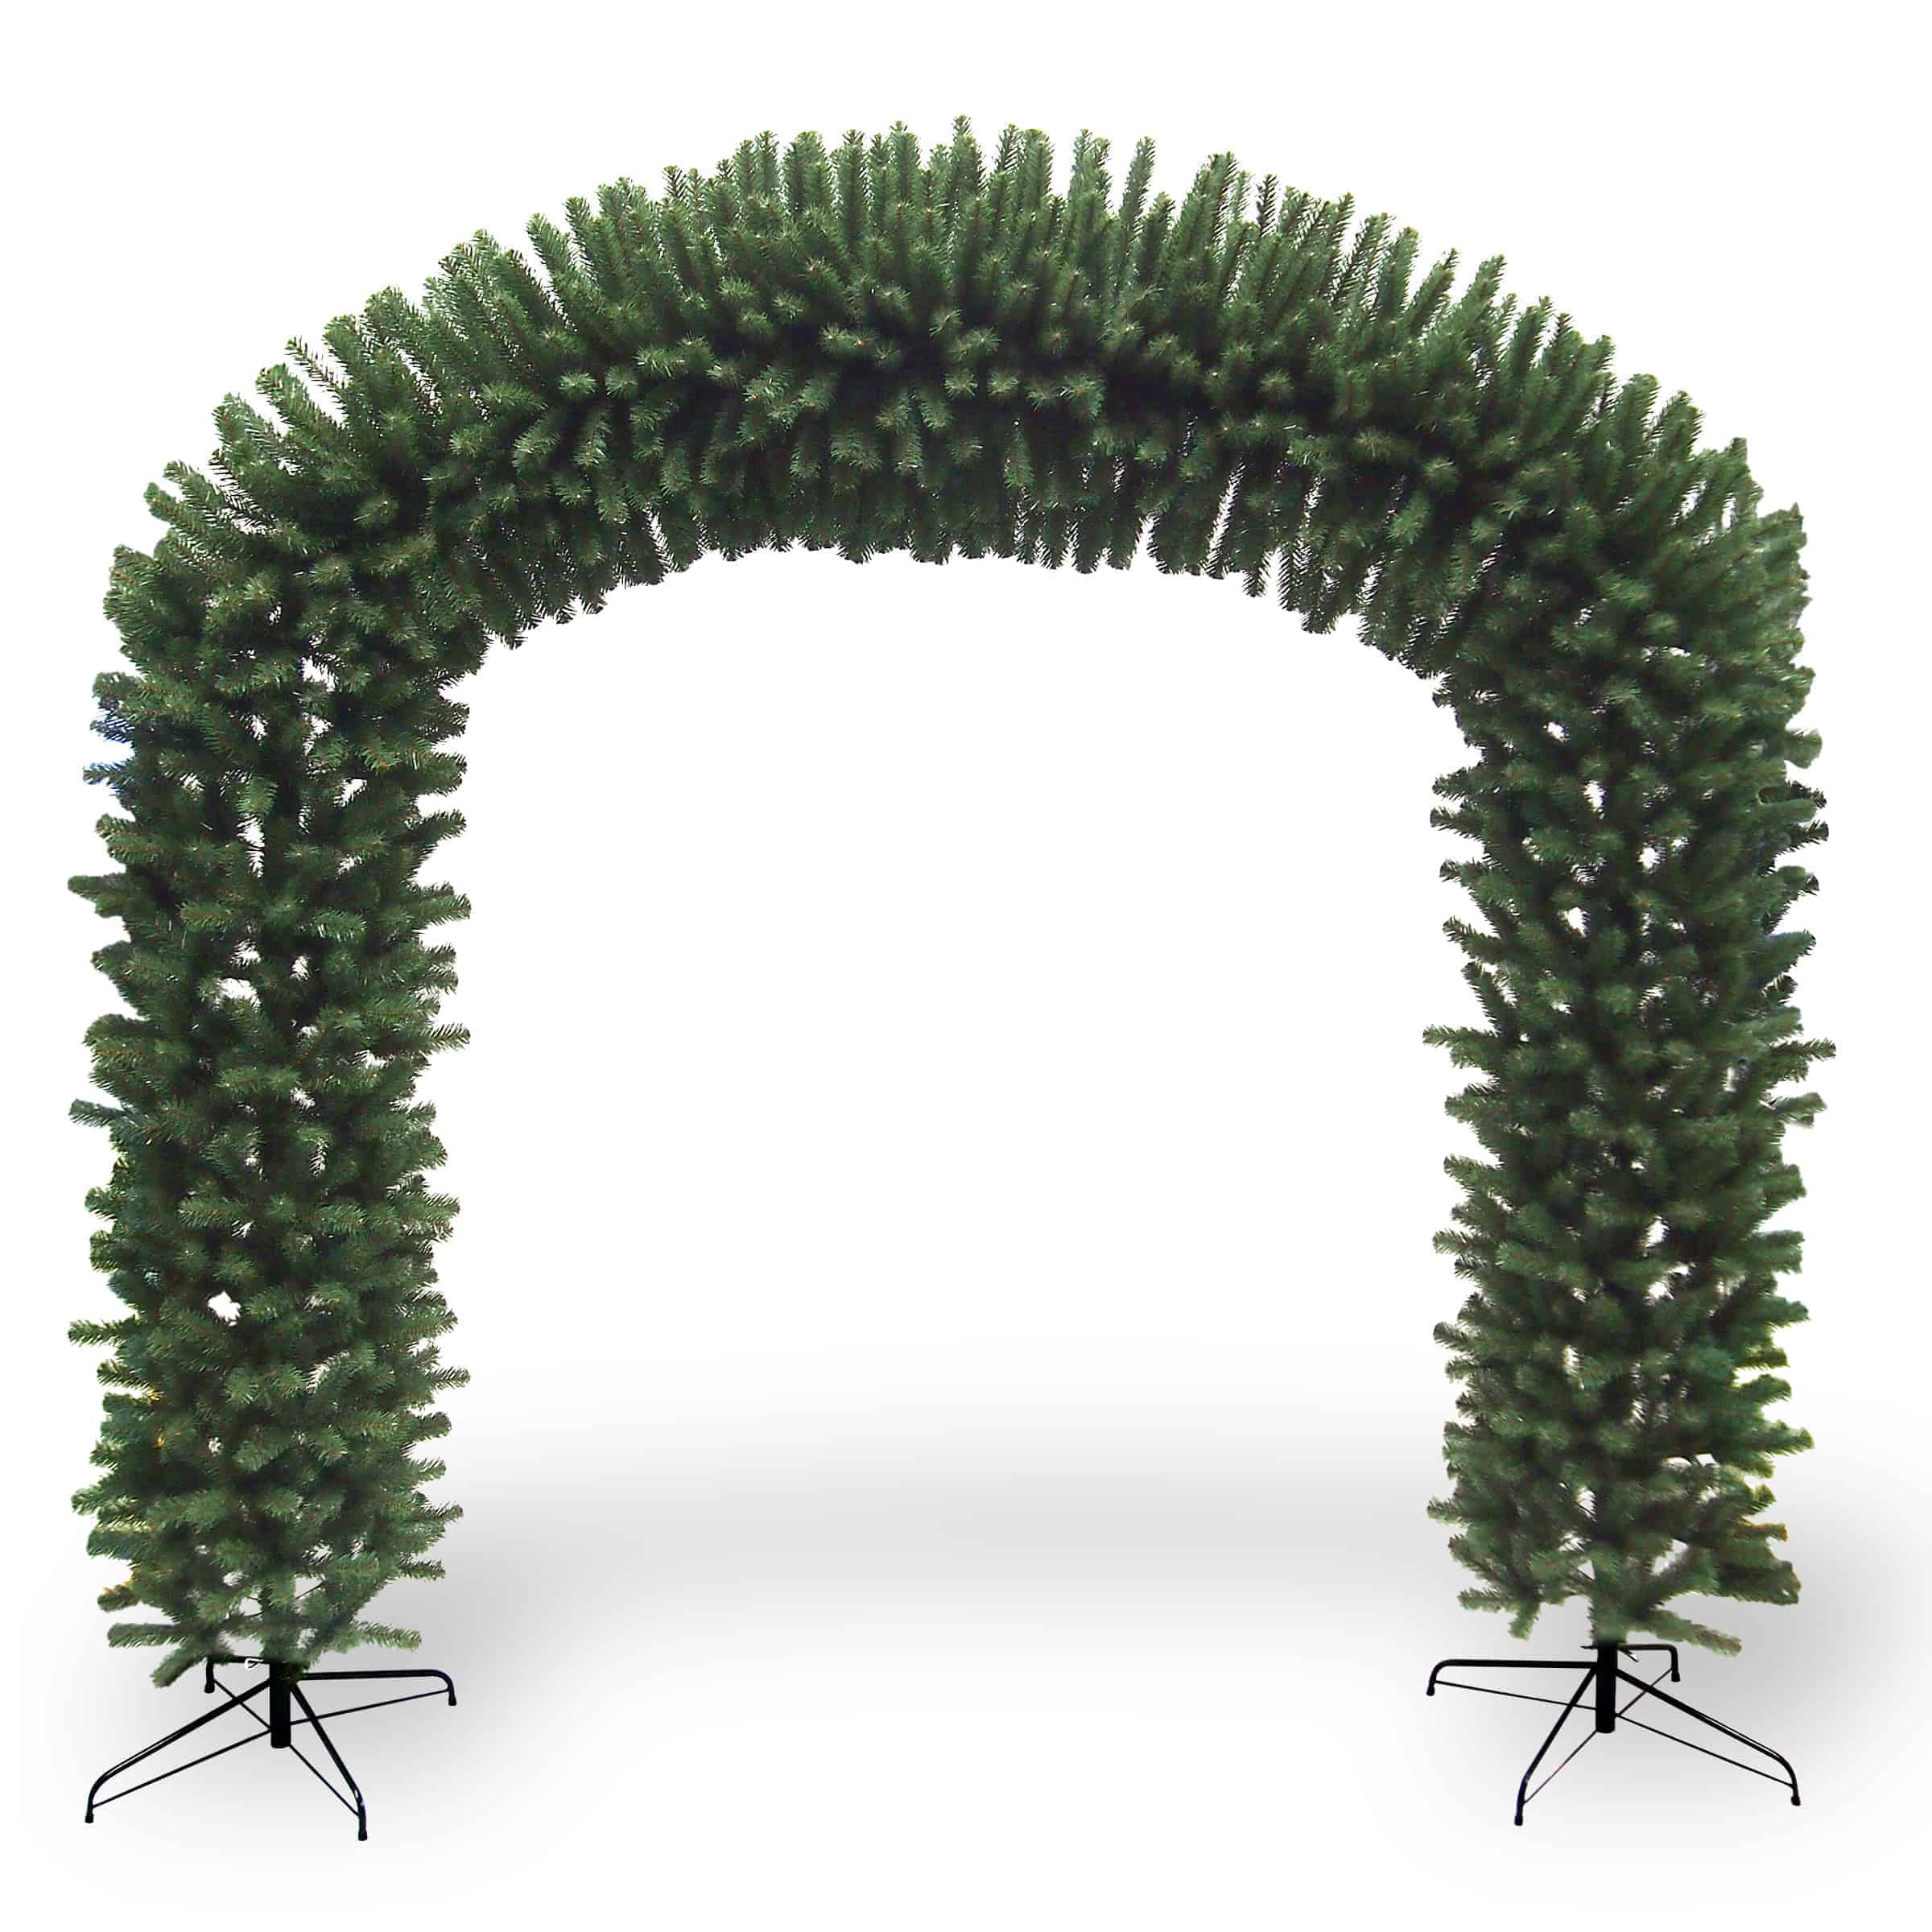 Artificial Christmas Trees (Un-Lit), 8 ft Christmas Trees | 8ft ...